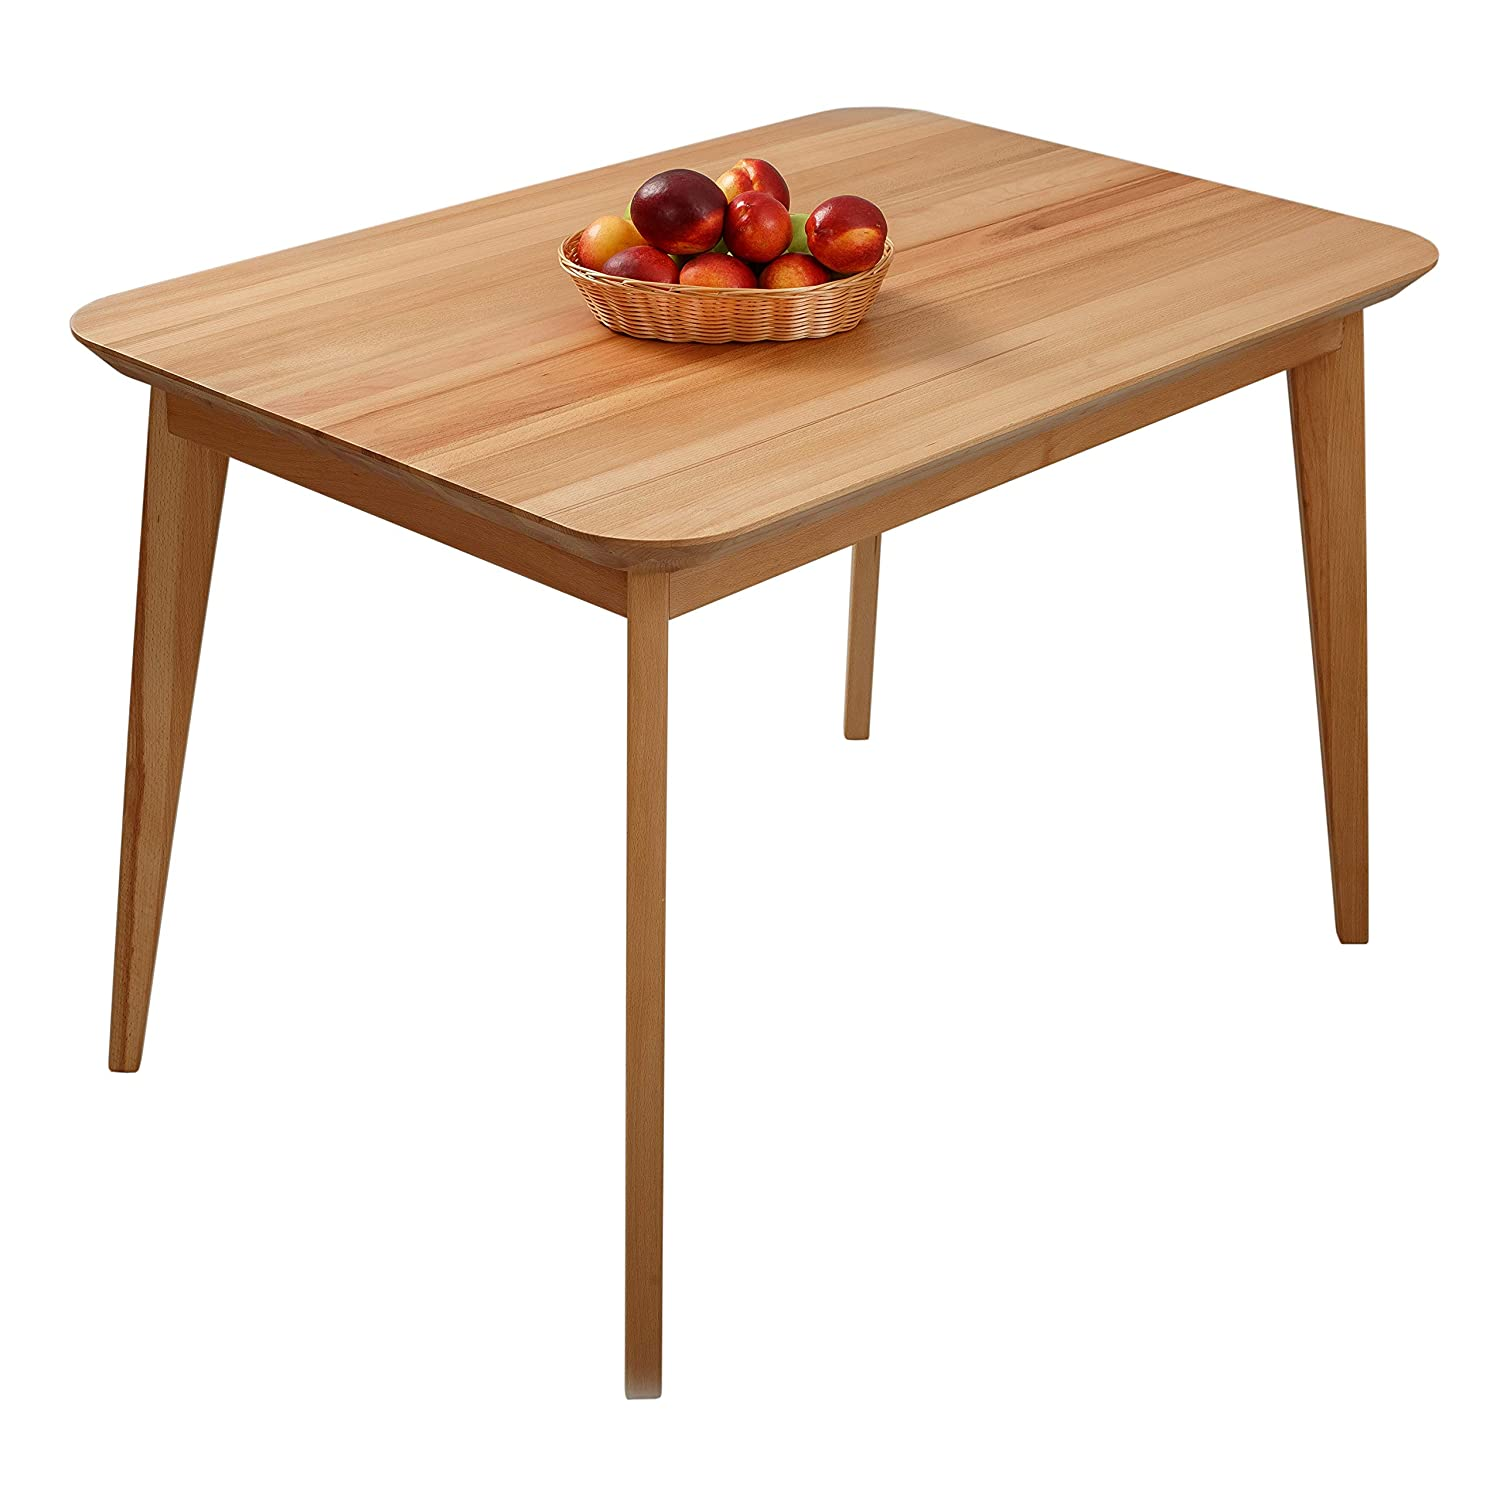 Paris Beech Dining Tables (75 x 50 x 75 cm) Krok Wood Ltd.